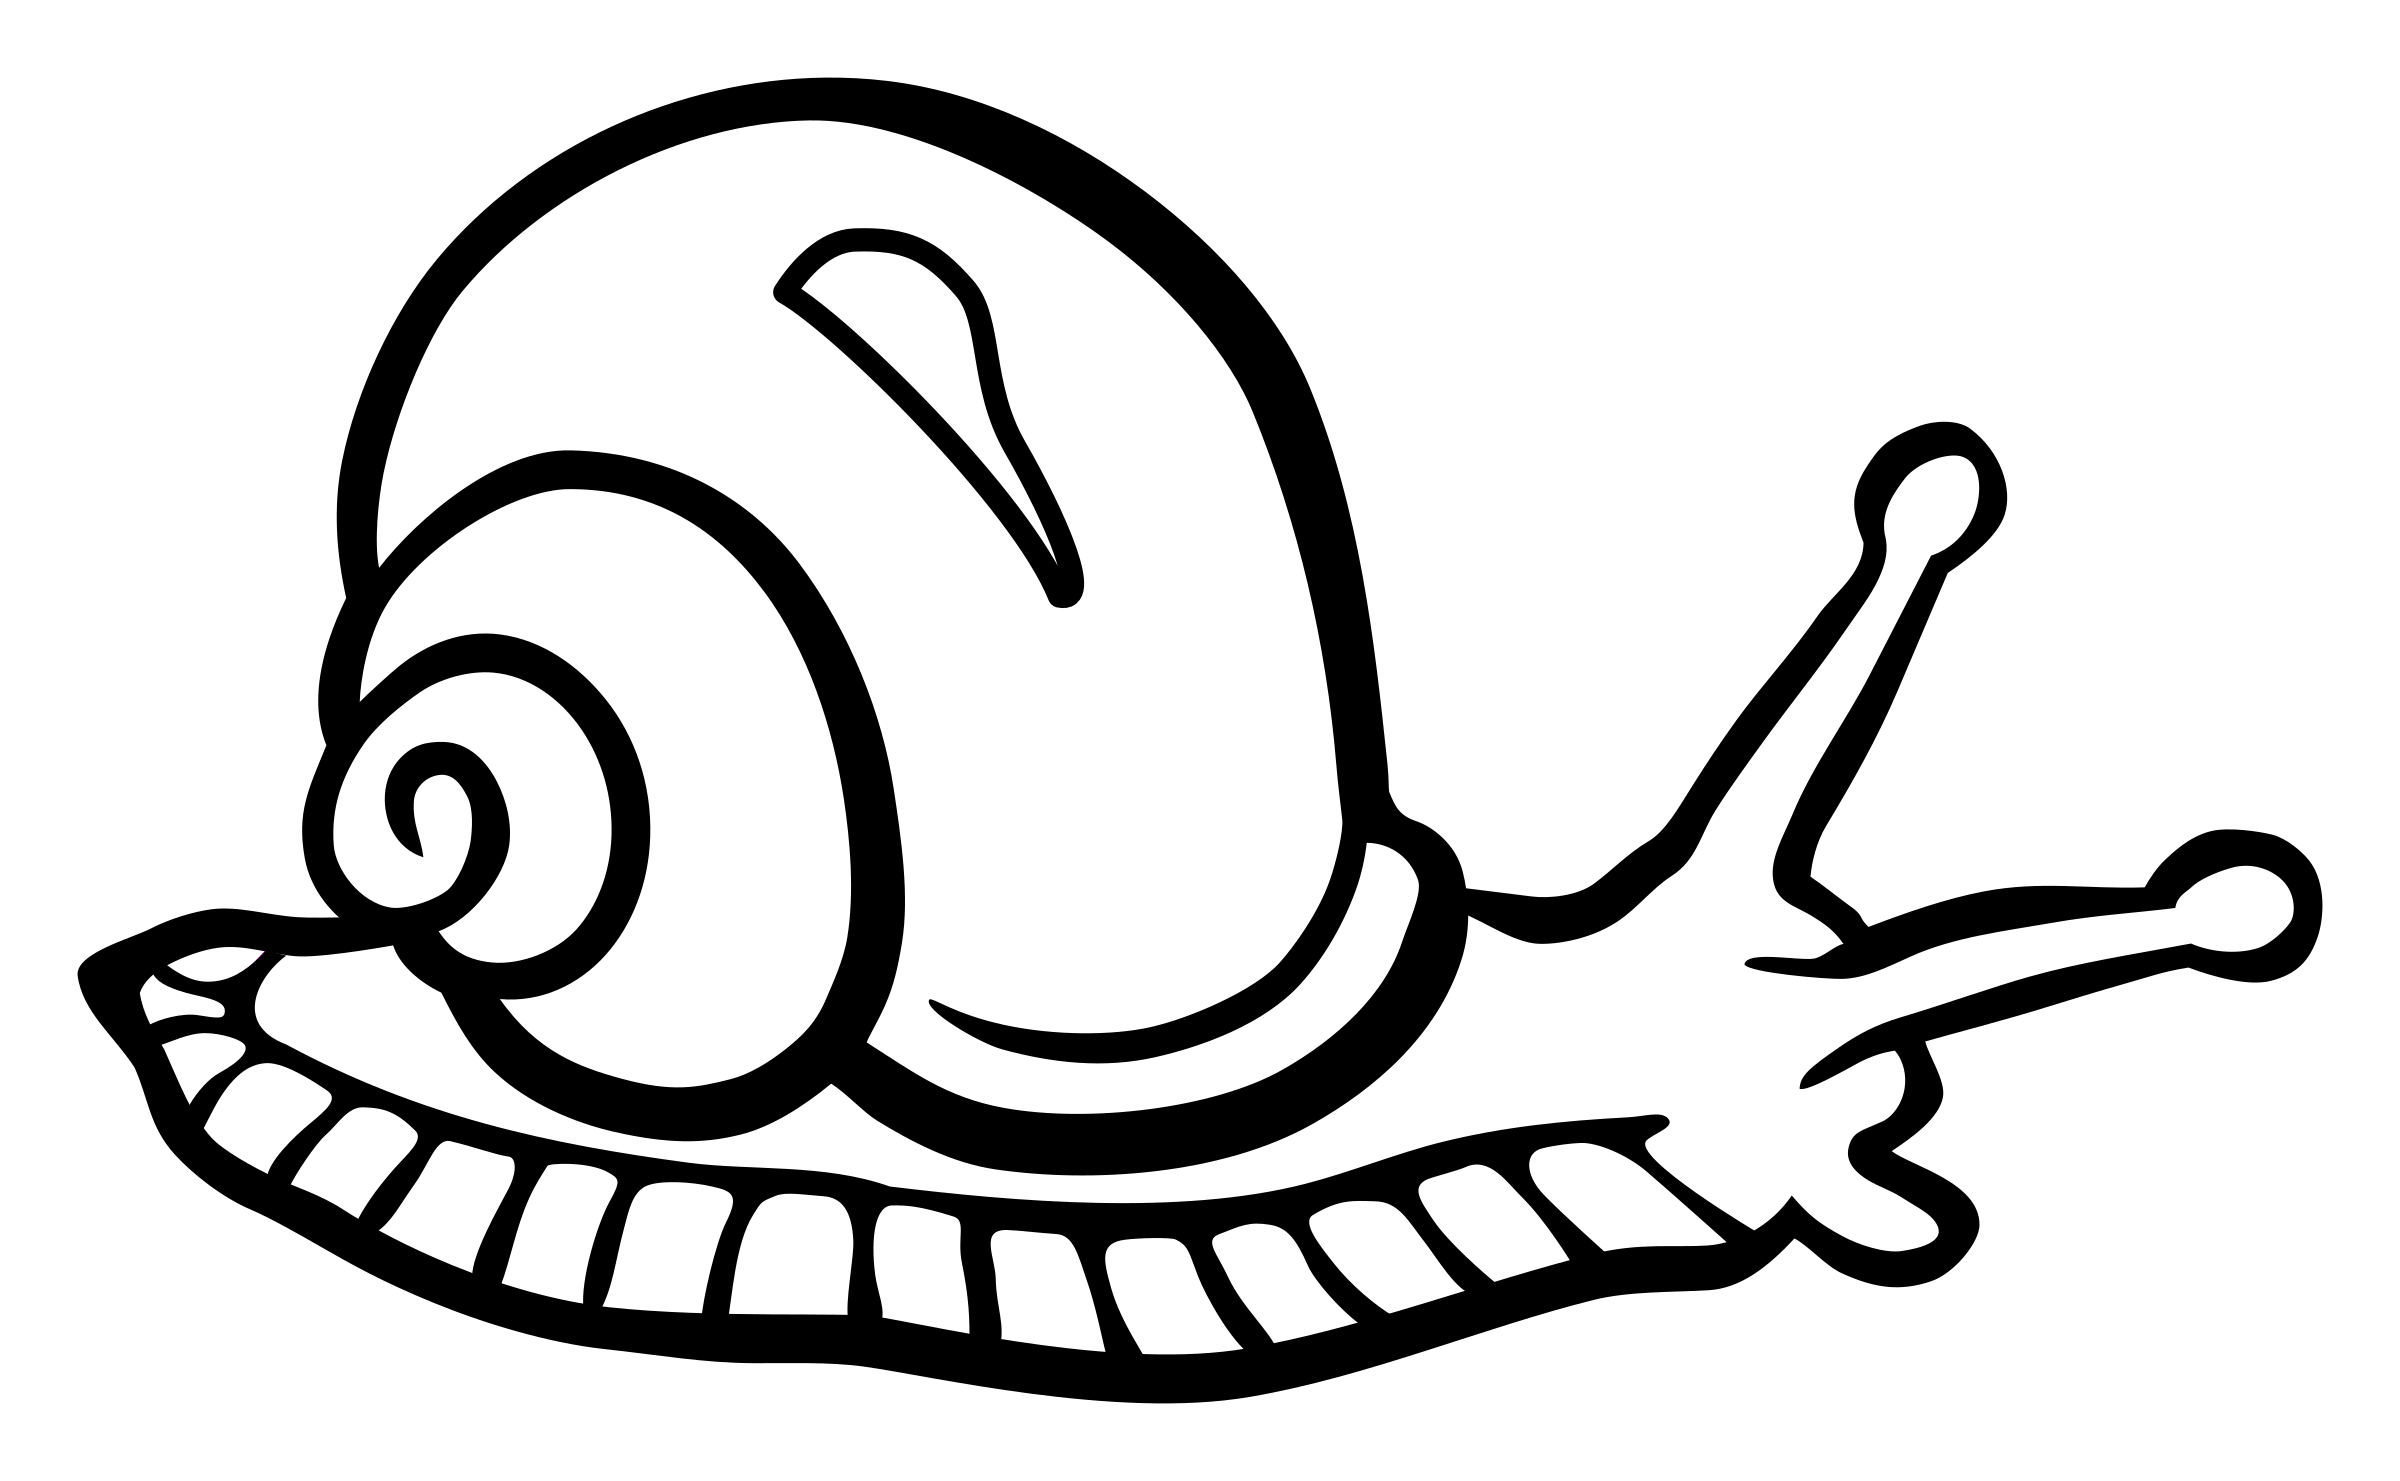 snail - lineart by frankes